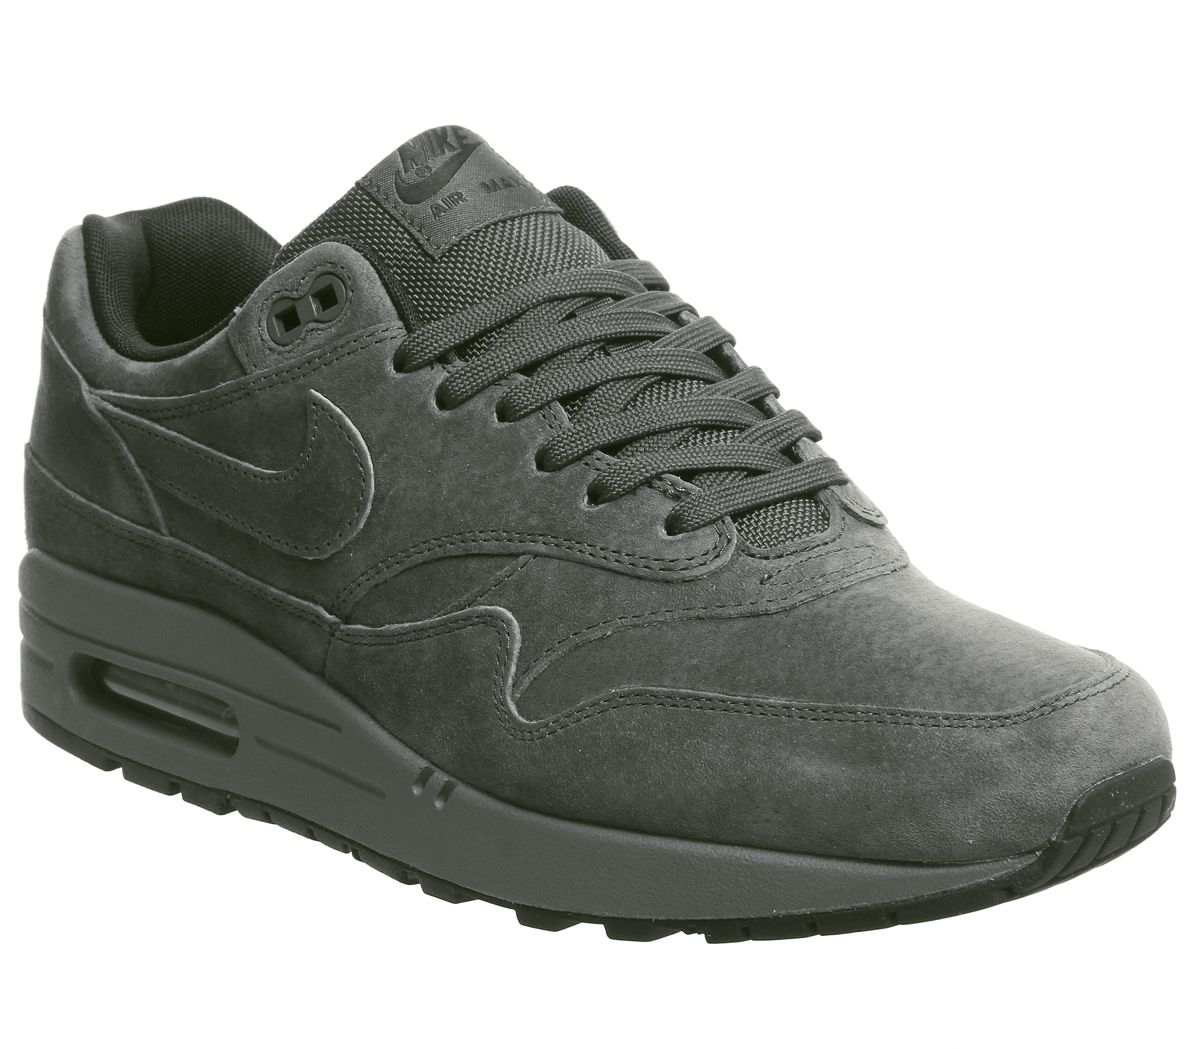 sports shoes 8f6f2 0a46f Nike Air Max 1 Trainers Anthracite Black Dark Grey - His trainers